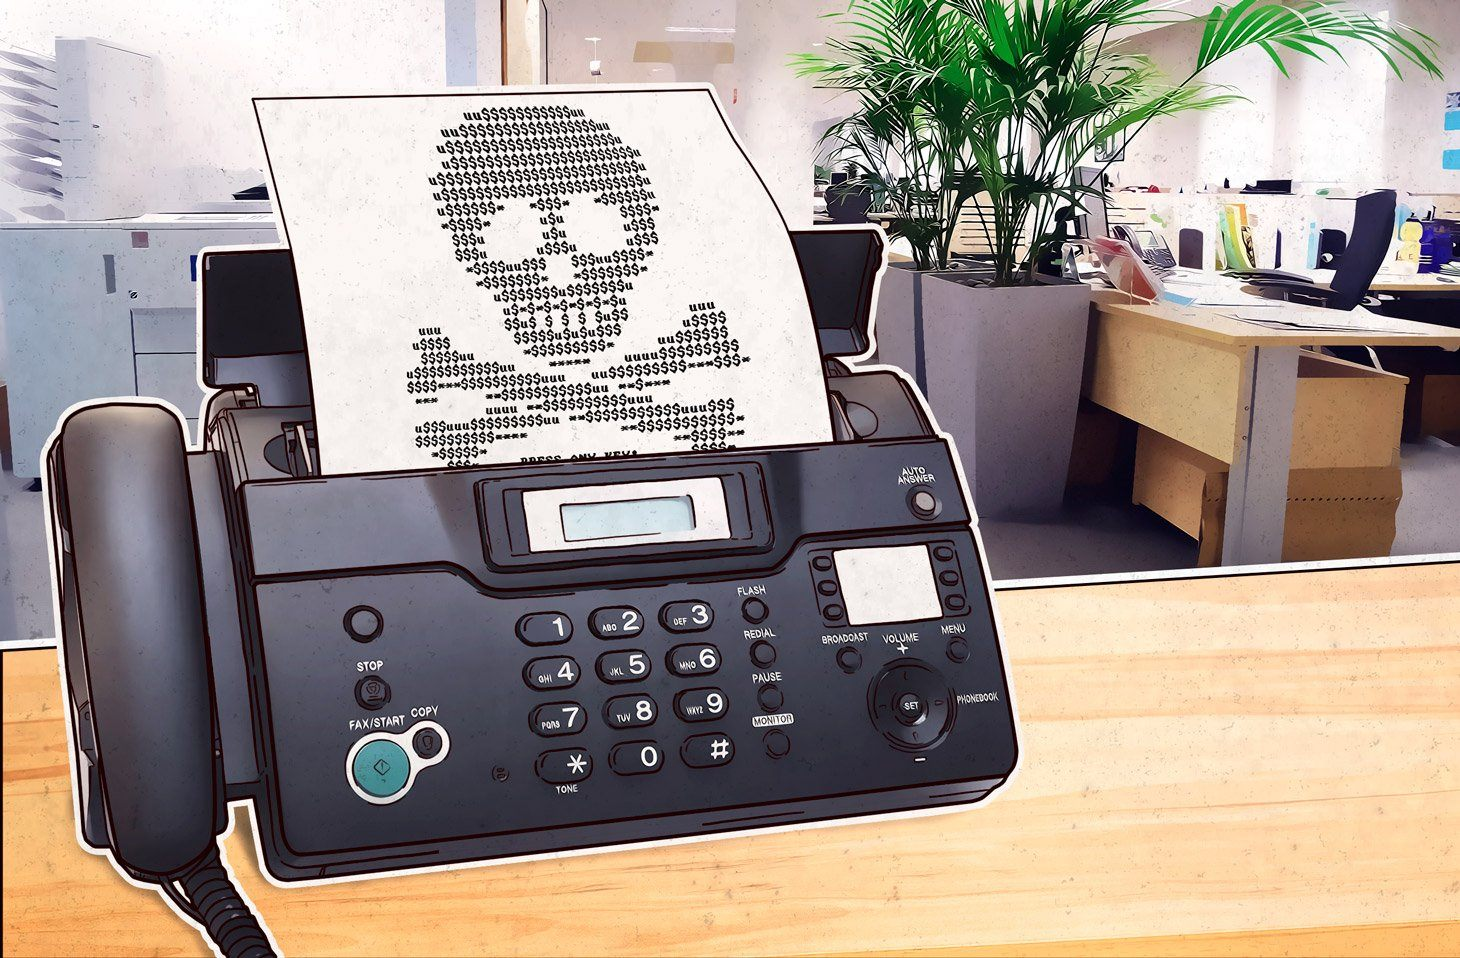 8 fun facts about fax yes fax kaspersky lab official blog